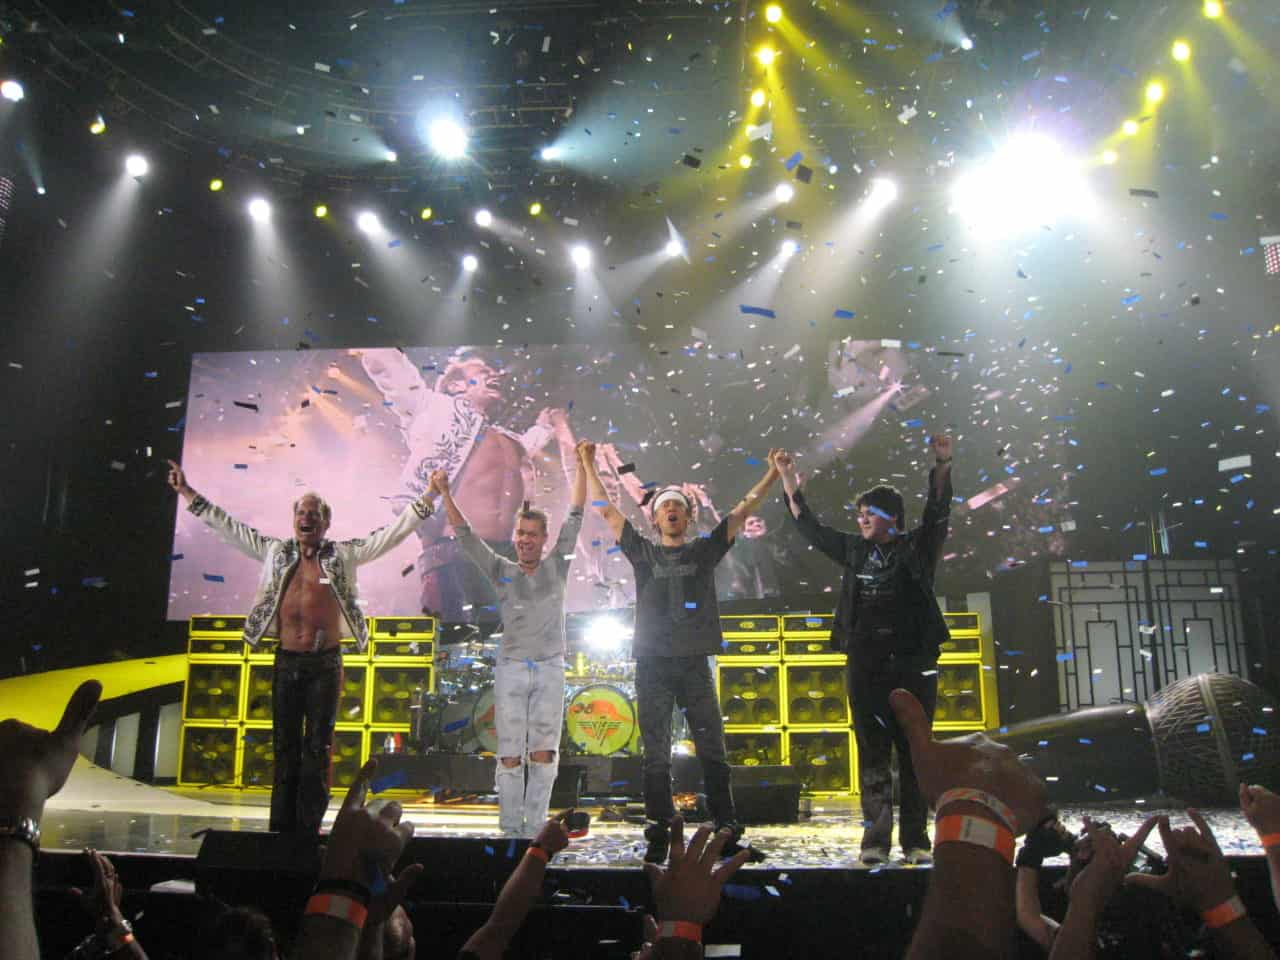 Van Halen Reunion Attempt Confirmed By Anthony | Photo by: GHOSTRIDER2112 / Flickr